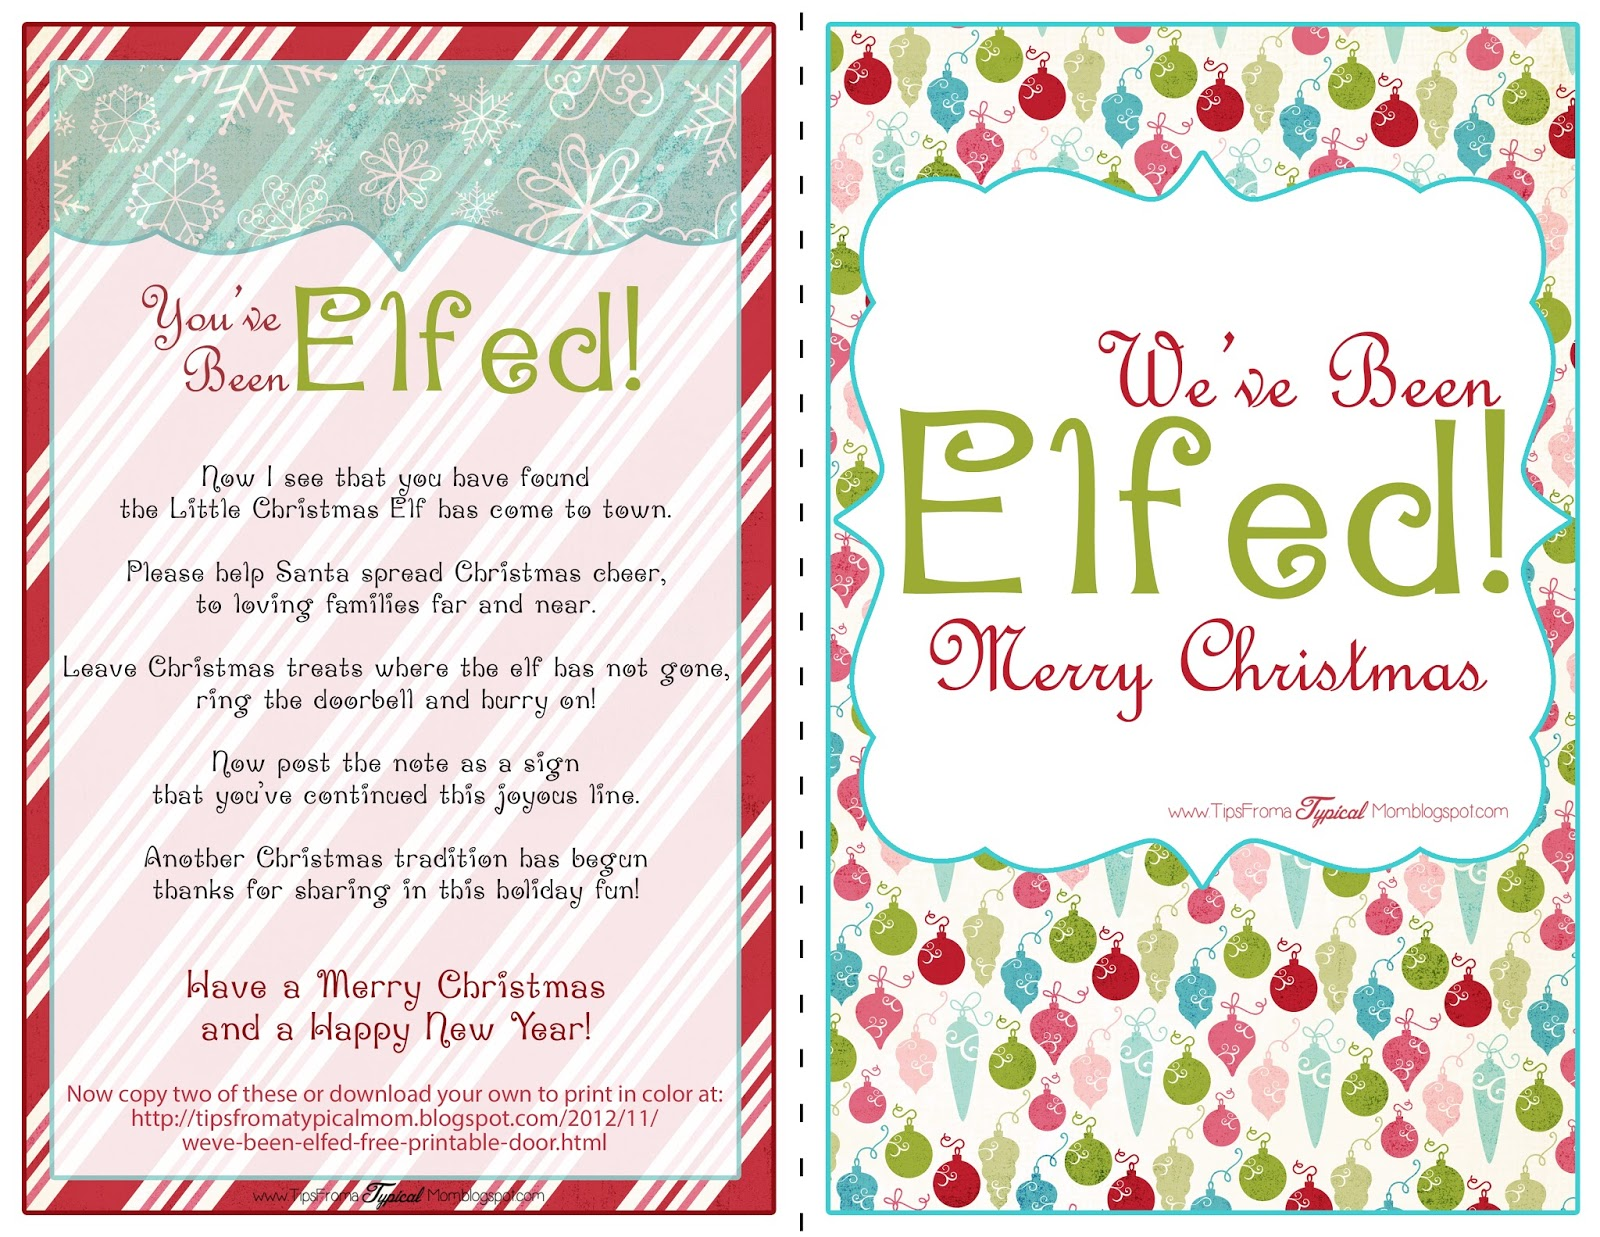 Vibrant image within you've been elfed free printable